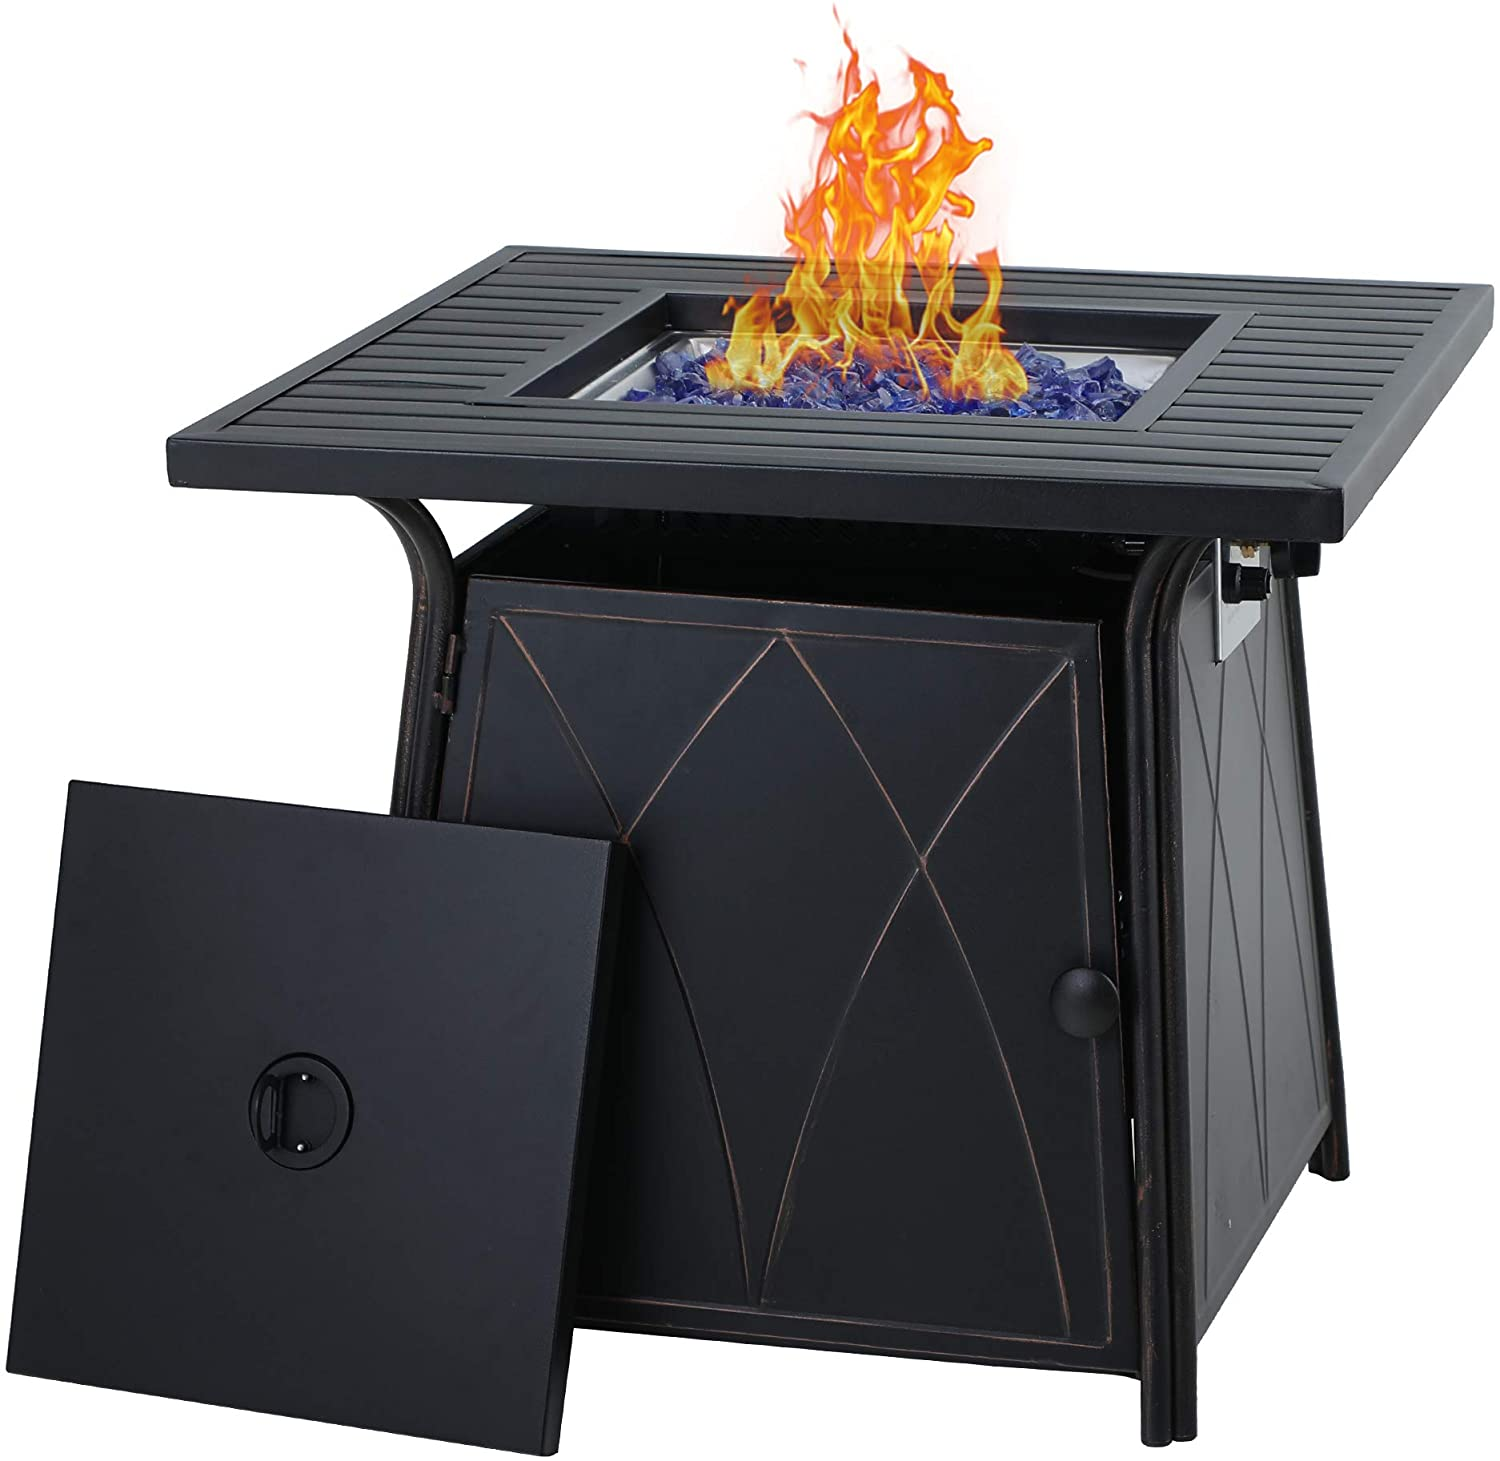 Mf Studio Gas Fire Pit Table 28 Inch Square Outdoor Patio Propane 50000 Btu Fire Pit Table With Lid And Blue Fire Glass Black Walmart Com Walmart Com